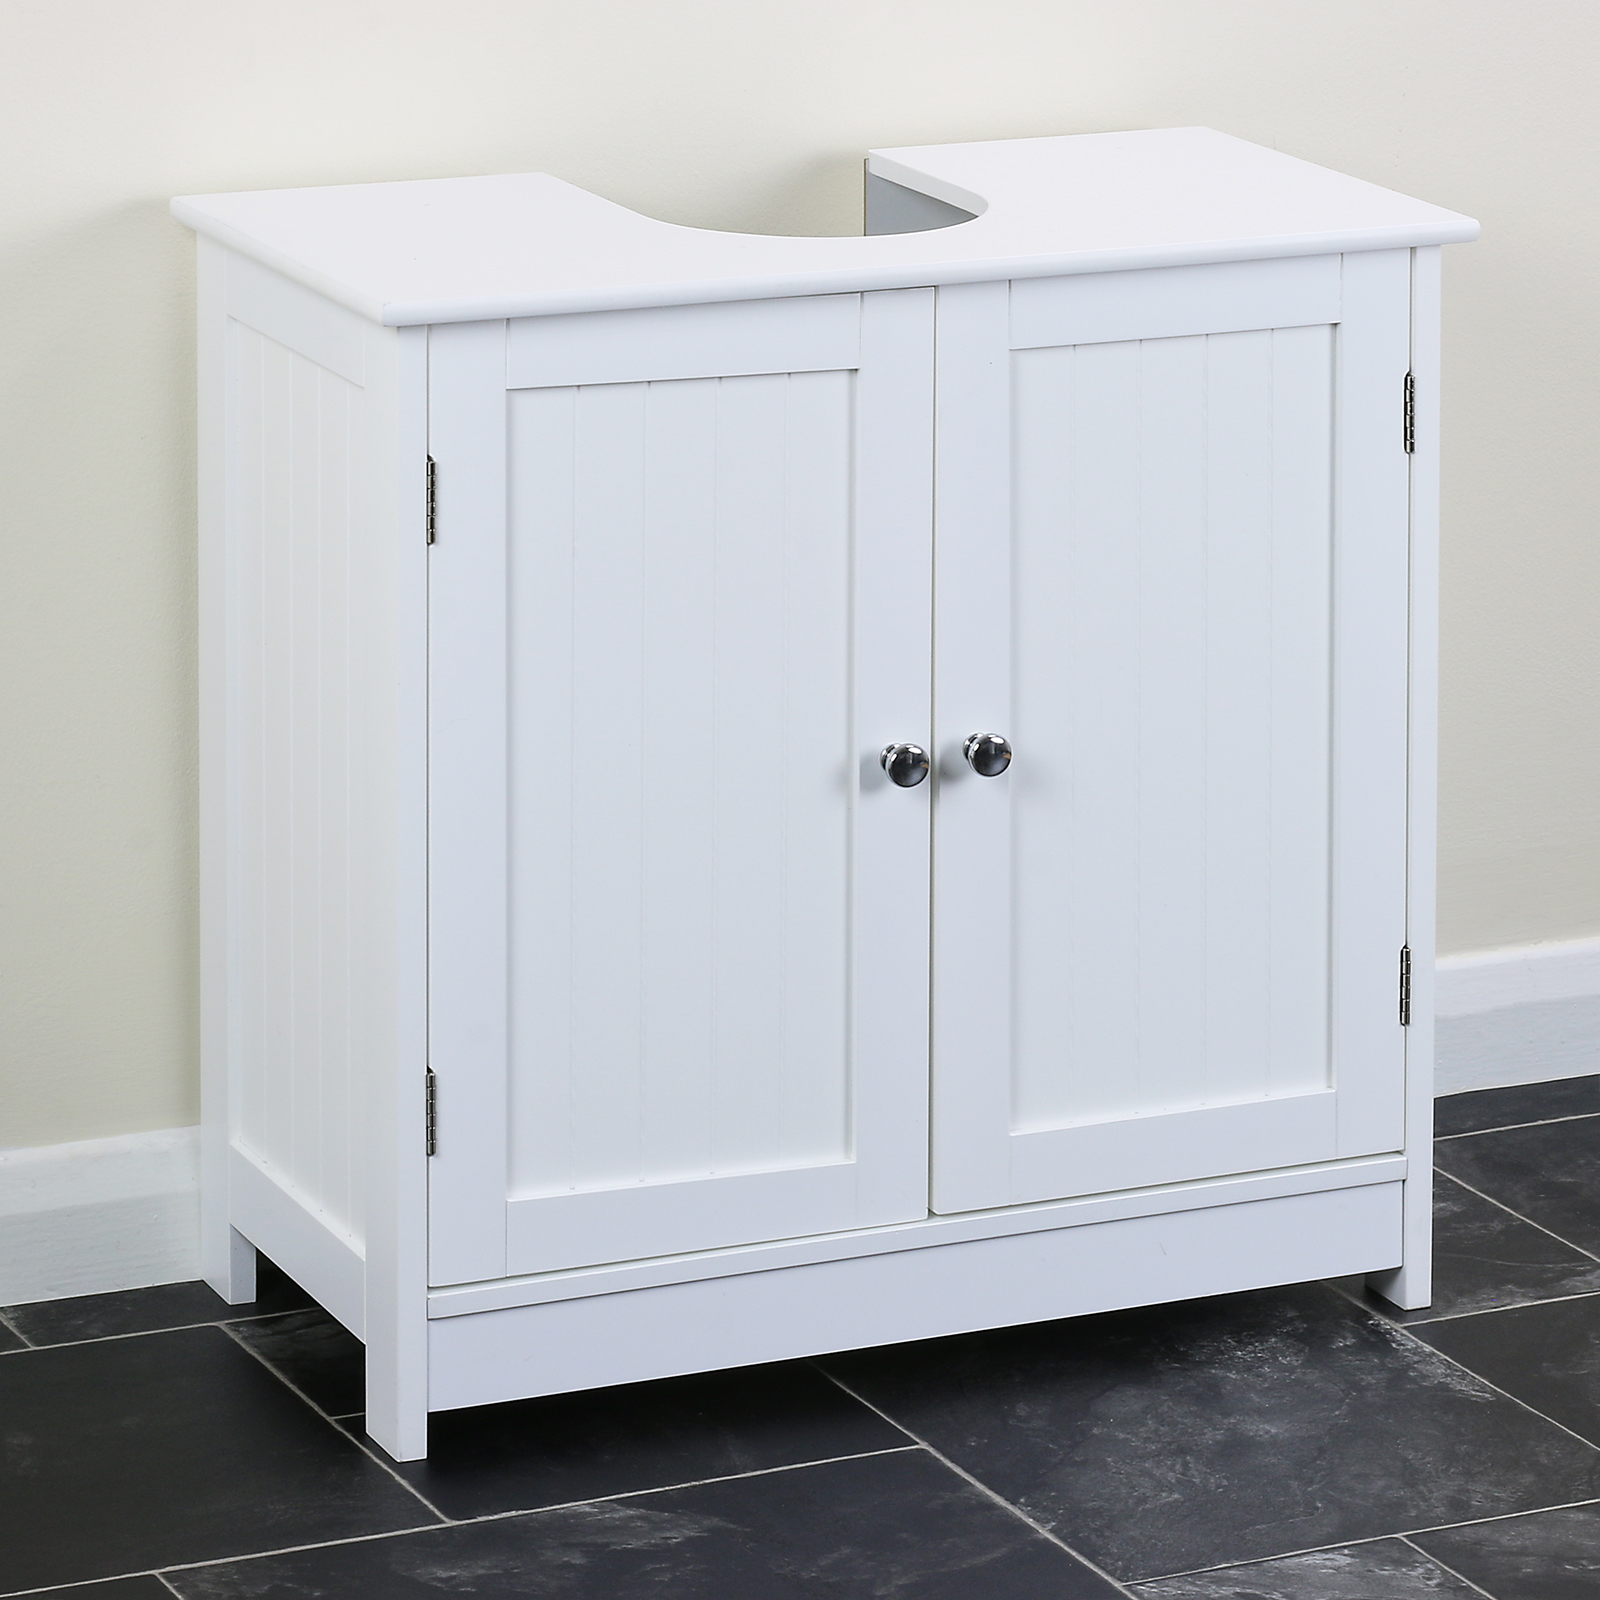 classic white under sink storage vanity unit bathroom cupboard with sink cut out 5051990728967. Black Bedroom Furniture Sets. Home Design Ideas